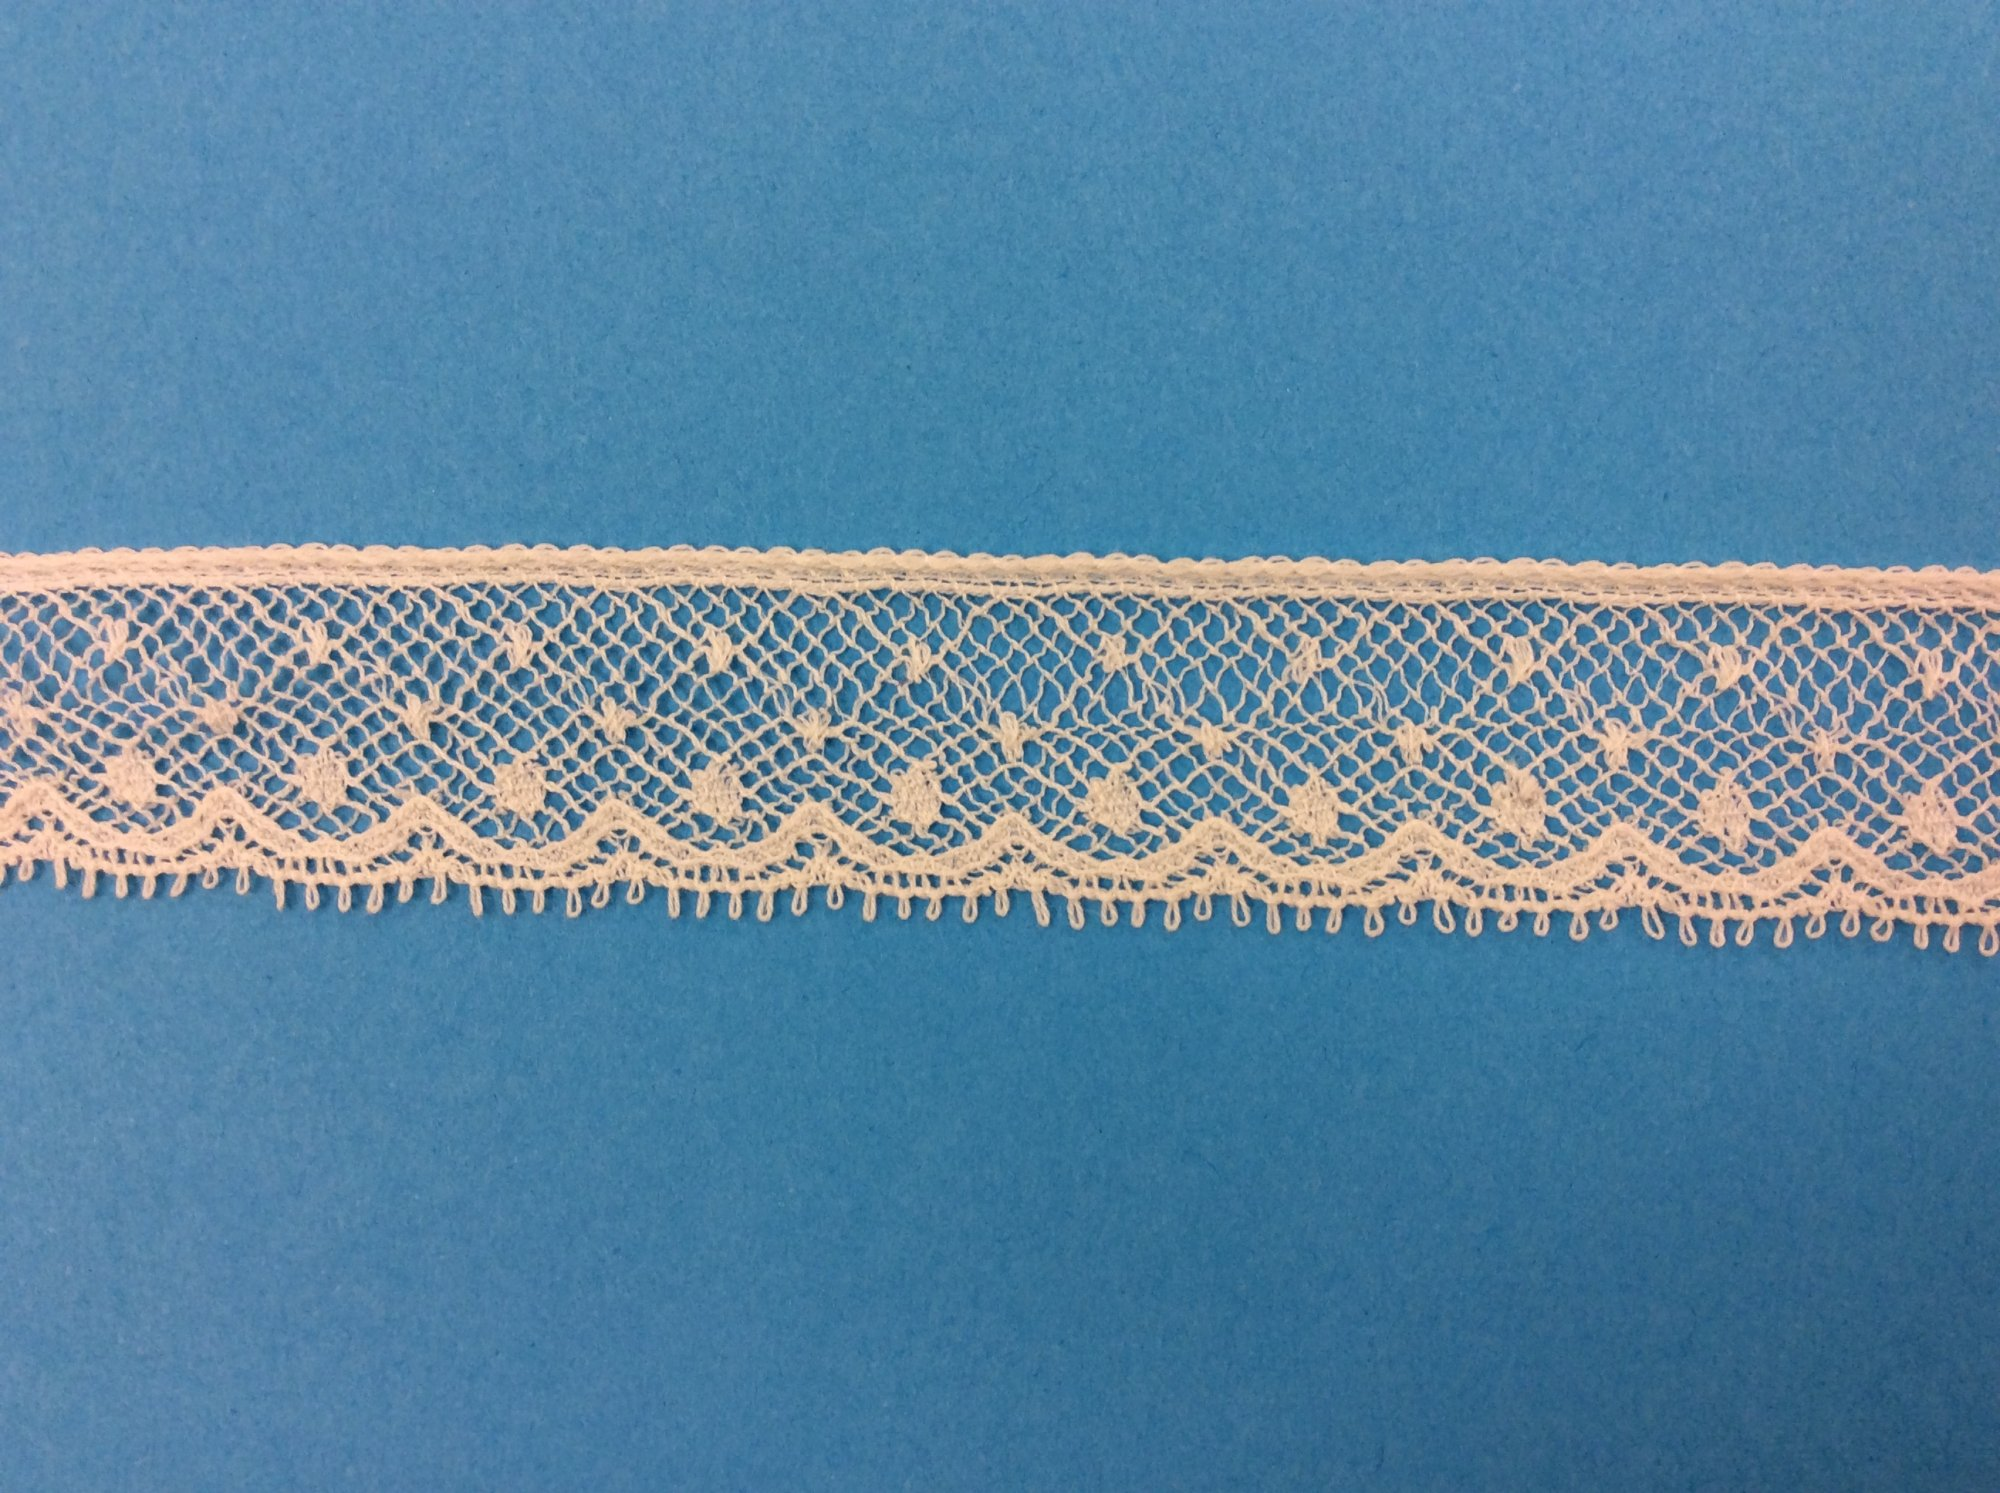 3/4 Lace Edging - Champagne 21179